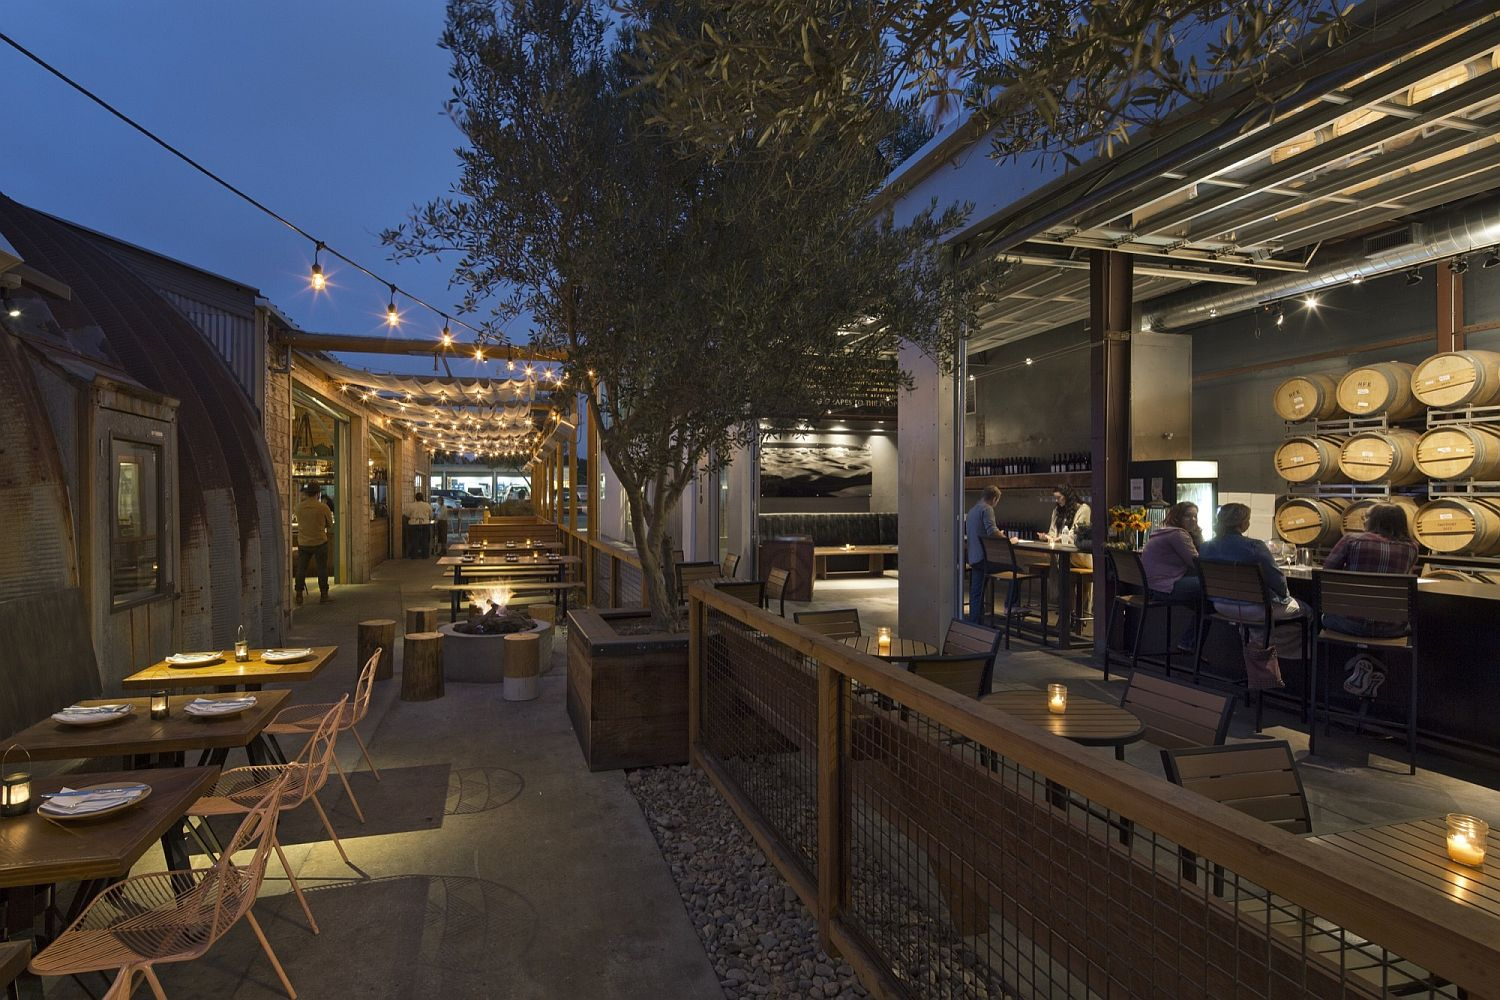 String lighting transforms the outdoor dining area and bar into a hip zone